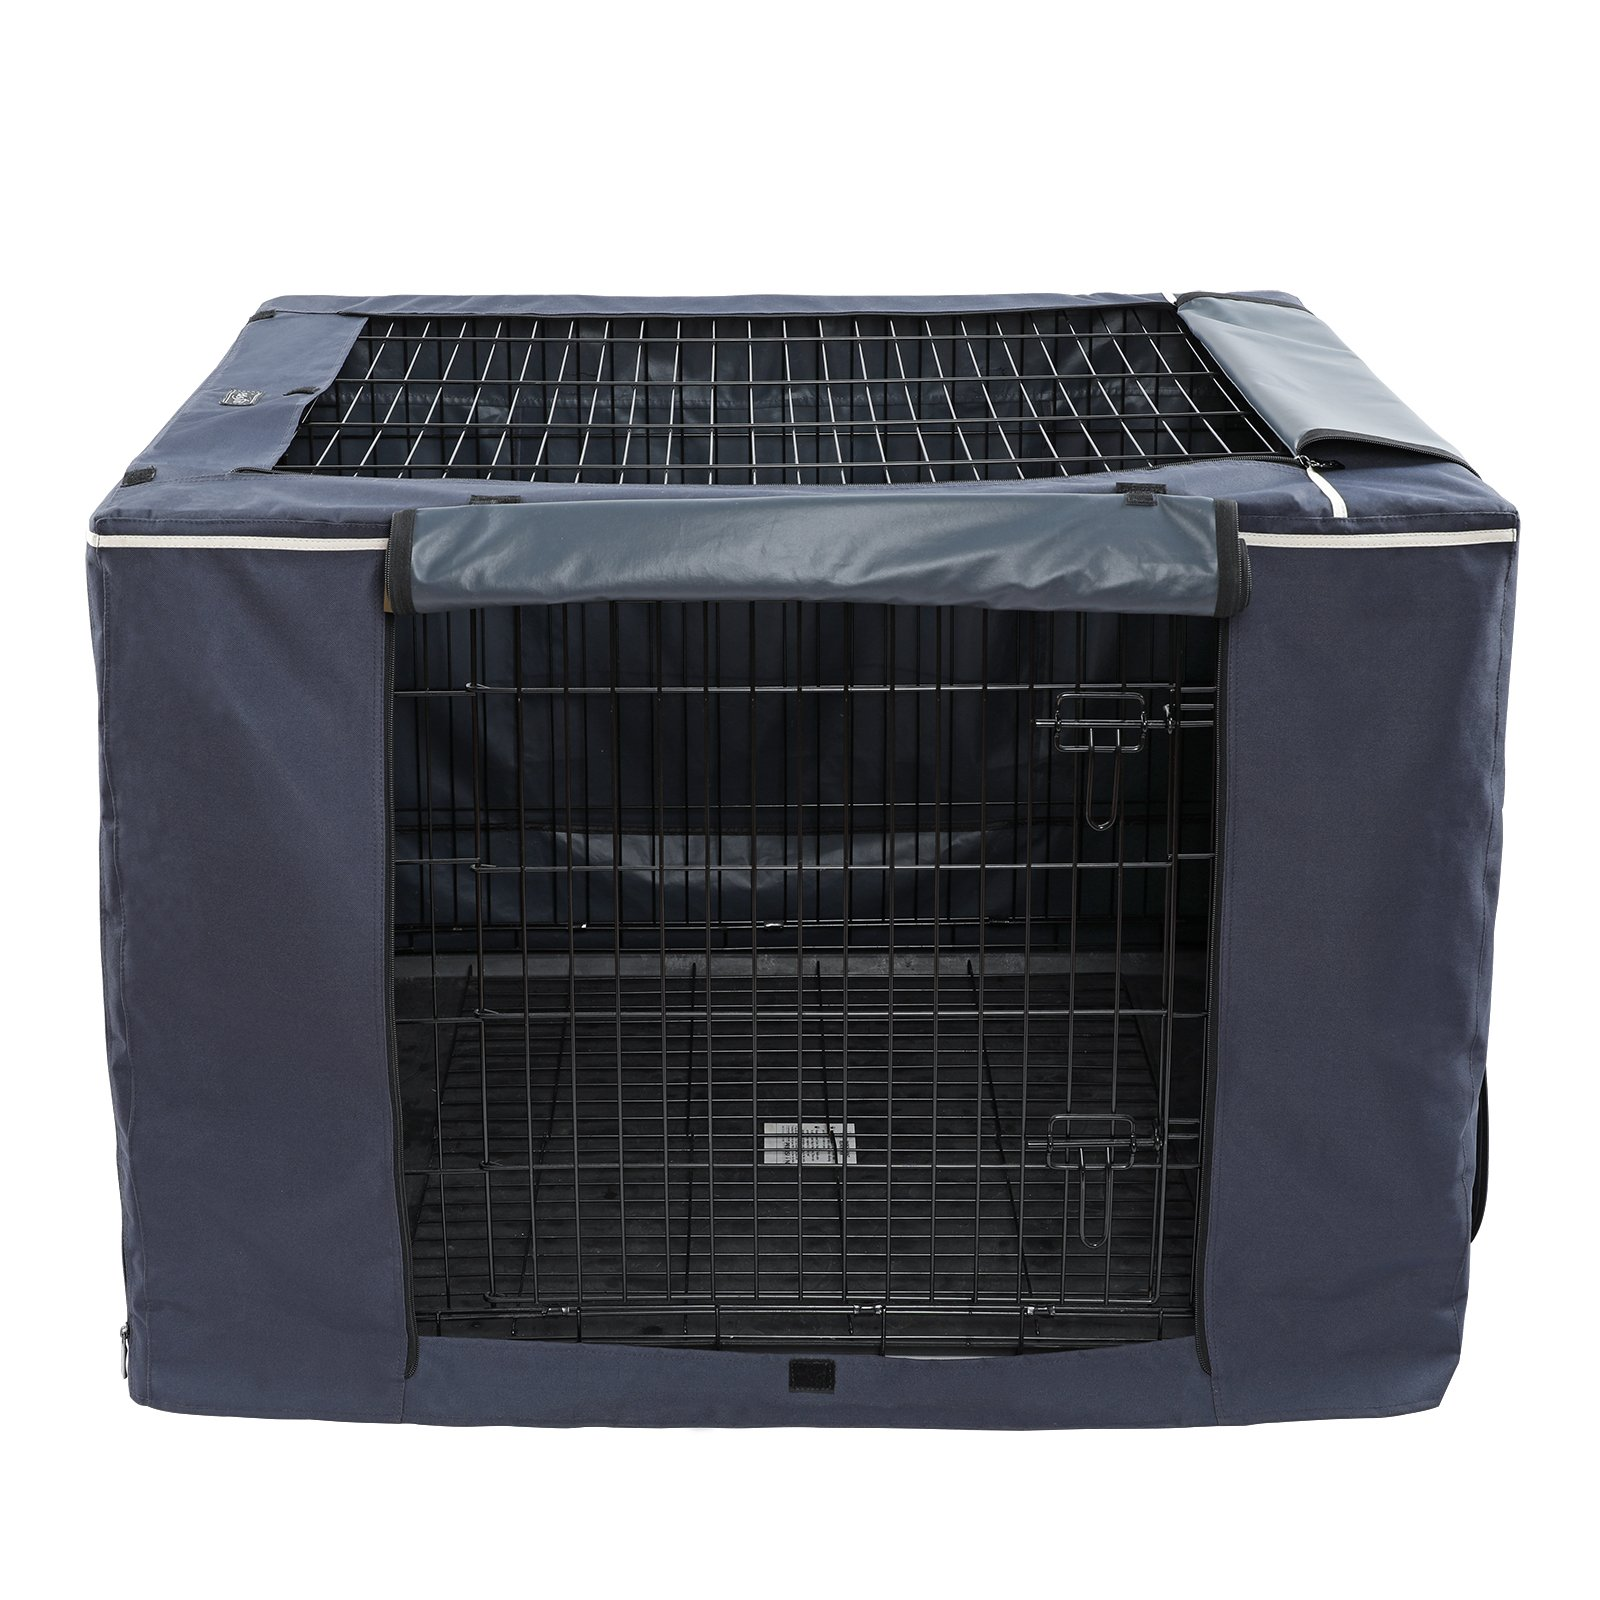 """Petsfit Oxford Cloth Pet Kennel Cover for Wire Dog Crates 42""""L x 28""""W x 30""""H, With Three-Side and Top Windows, Back Zipper, Dark Blue by Petsfit (Image #8)"""